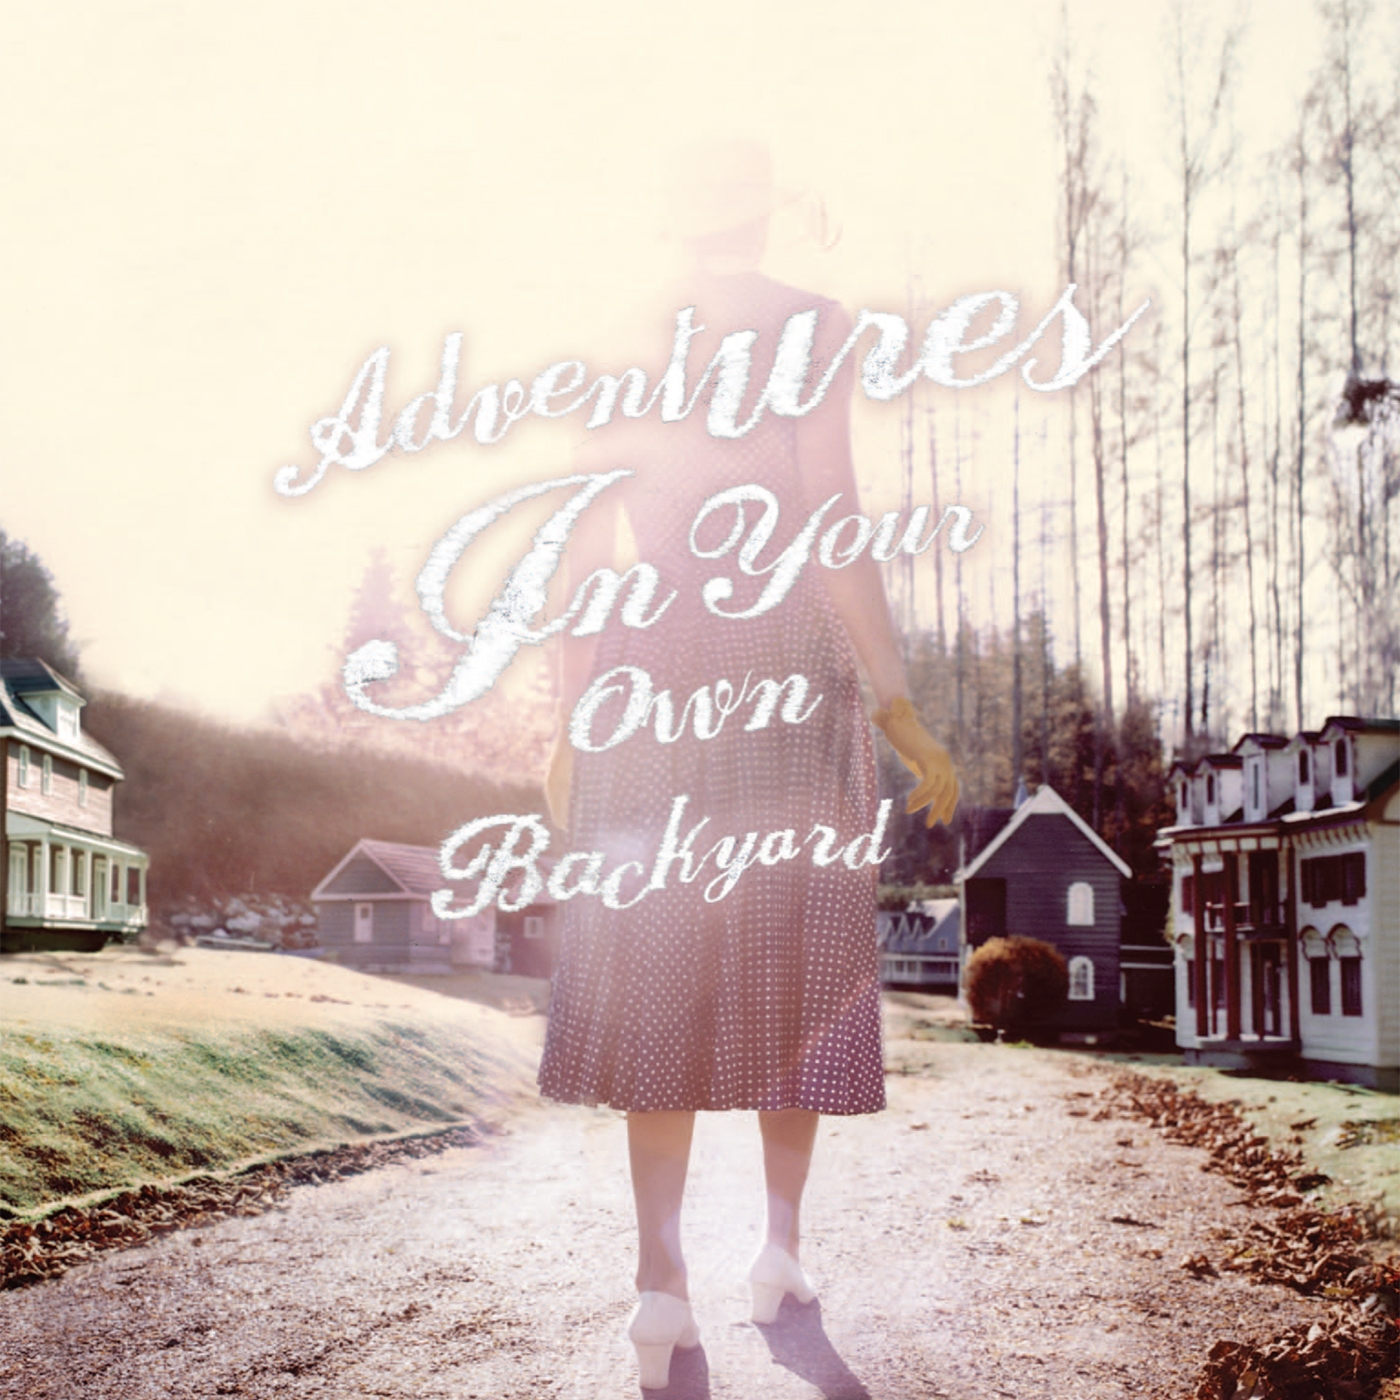 Patrick-Watson-Adventures-In-Your-Own-Backyard